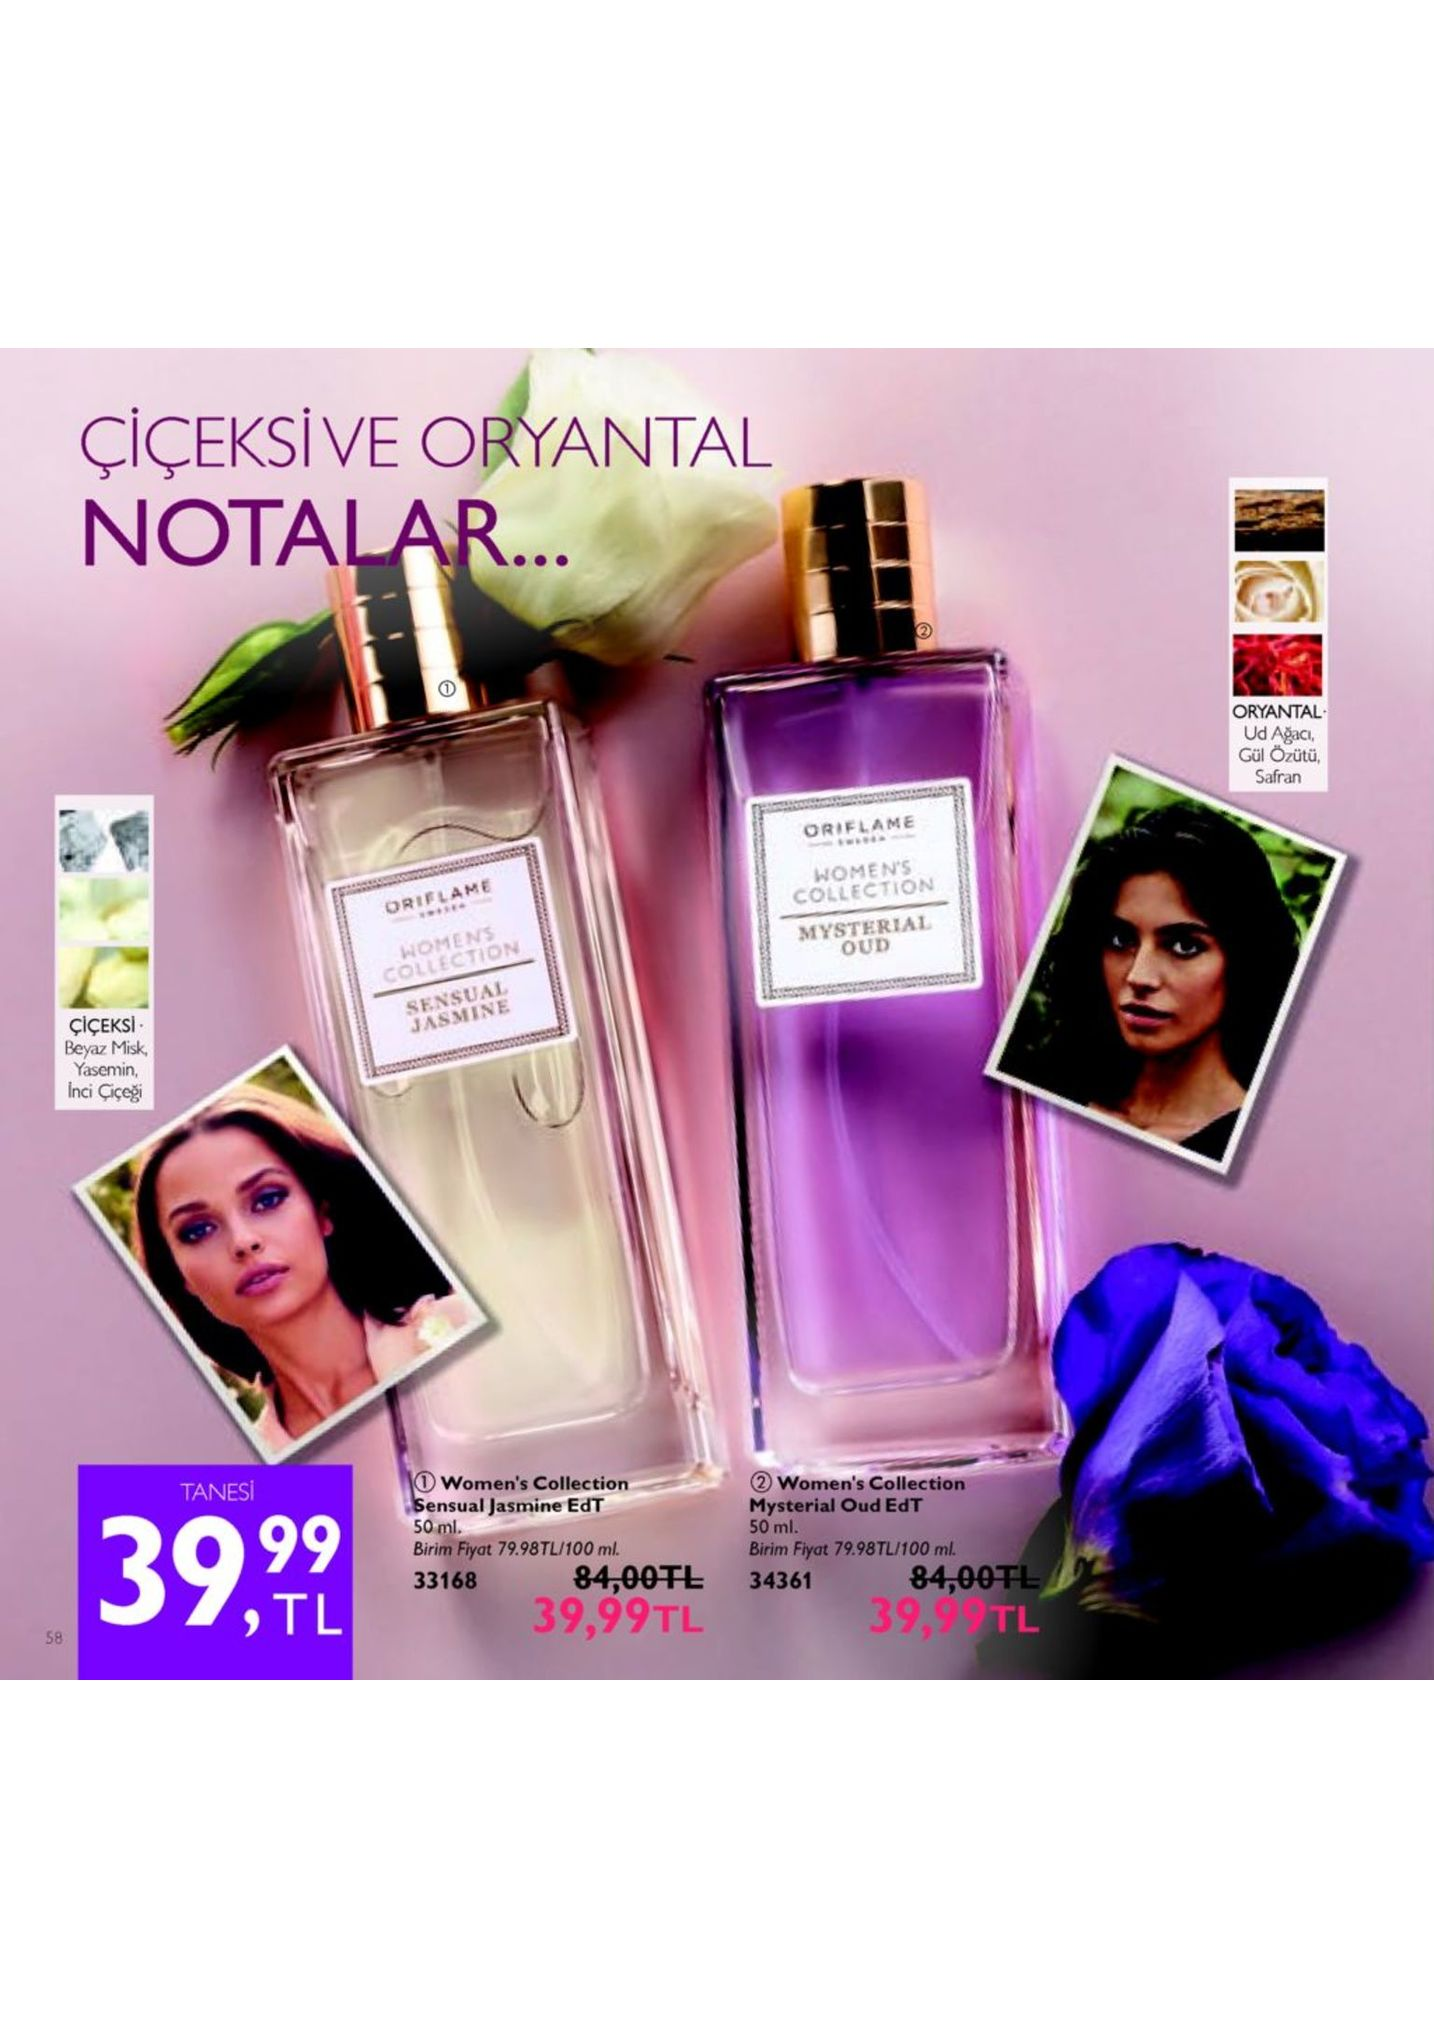 çiçeksi ve oryantal notalar oryantal ud ağaci, gül özütü, safran orielame womens collection oriflame homens collection mysterial oud sensual asmine çiçeksi . beyaz misk, yasemin, inci çiçeği tanesi d women's collection sensual jasmine edt 50 ml. birim fiyat 79.98tl/100 ml. 33168 ② women's collectio mysterial oud edt 50 ml. birim fiyat 79.98tl/100 ml. 39% 84,00干し 34361 39,99tl 84,0 39,99 , tl 58 tl